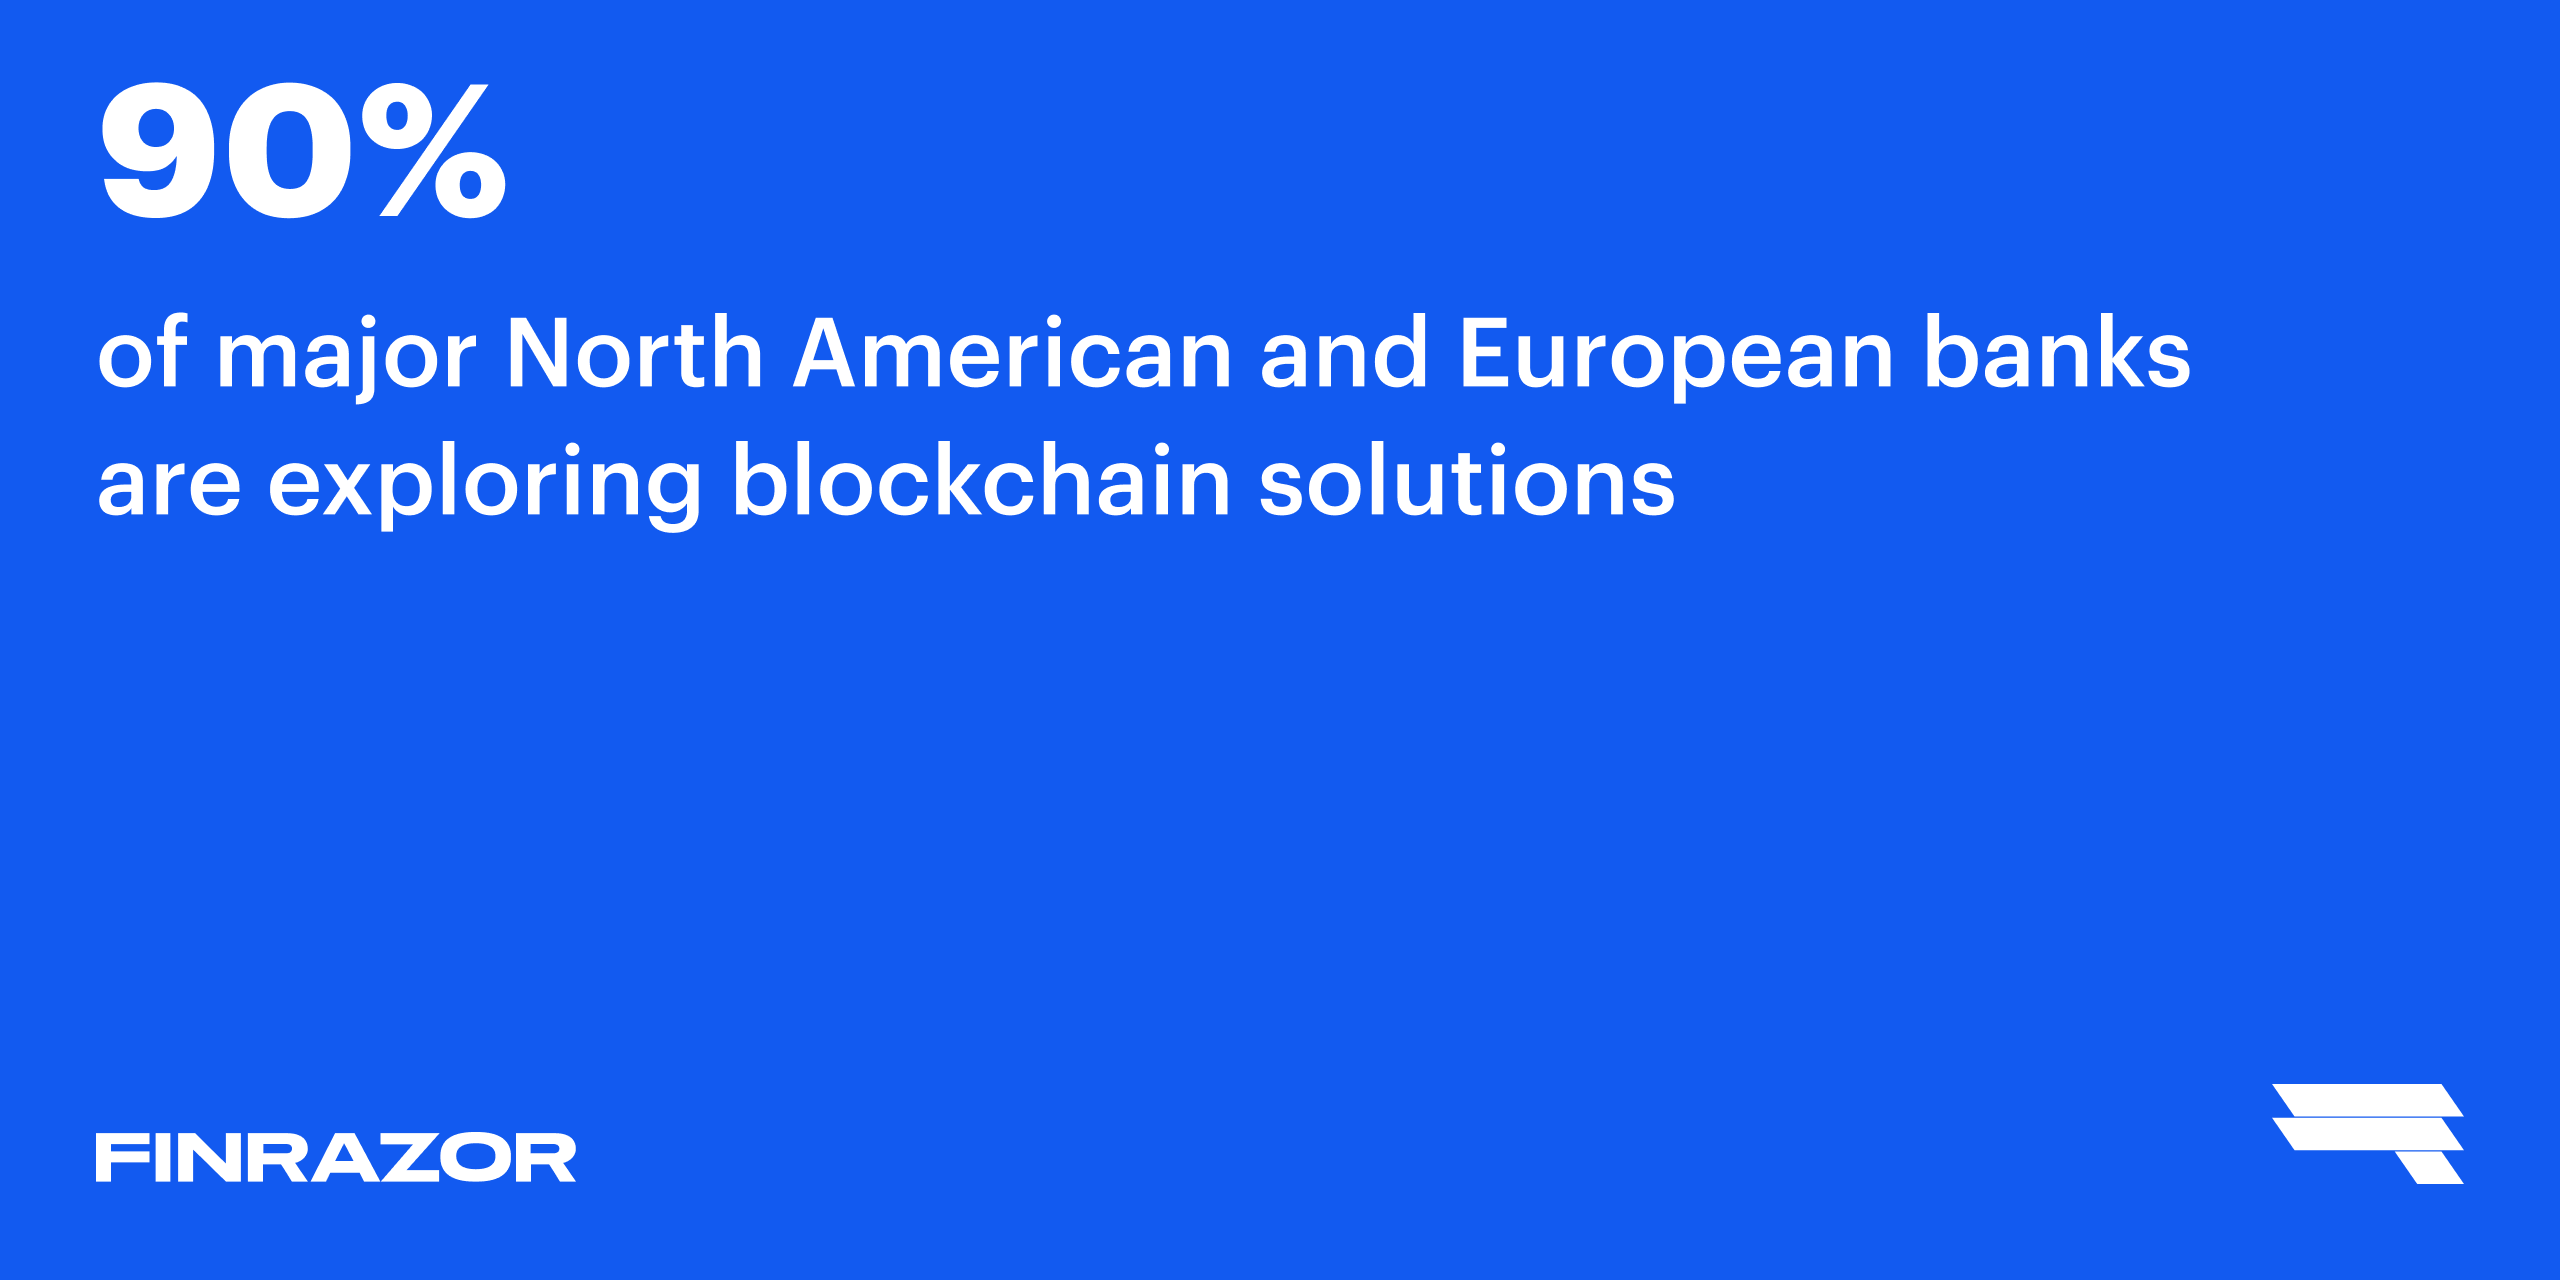 Banks which are exploring blockchain solutions